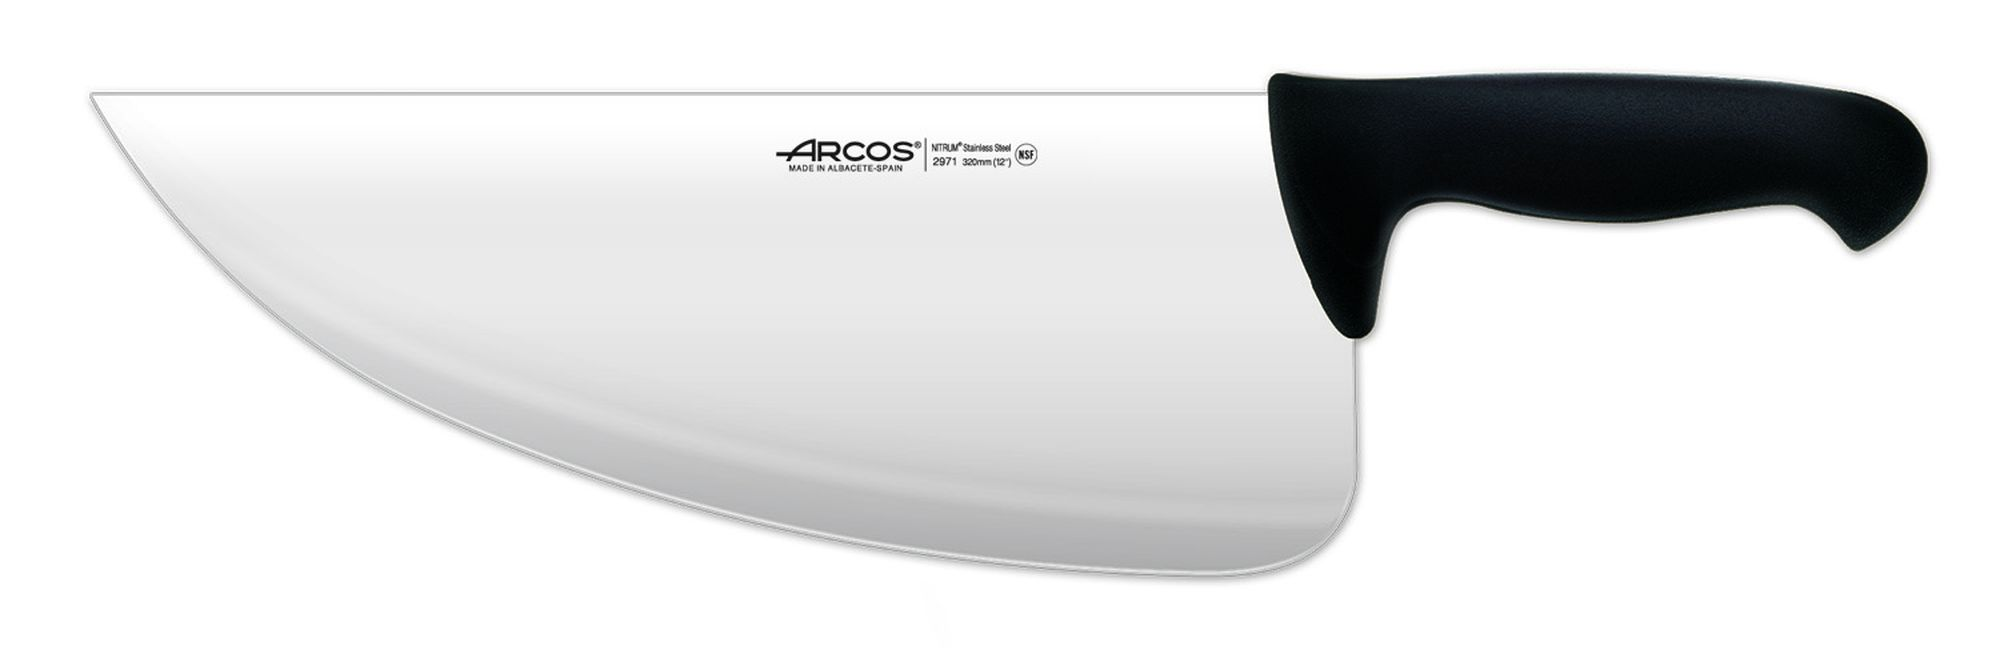 Fishmonger Knife Arcos ref.: 297125